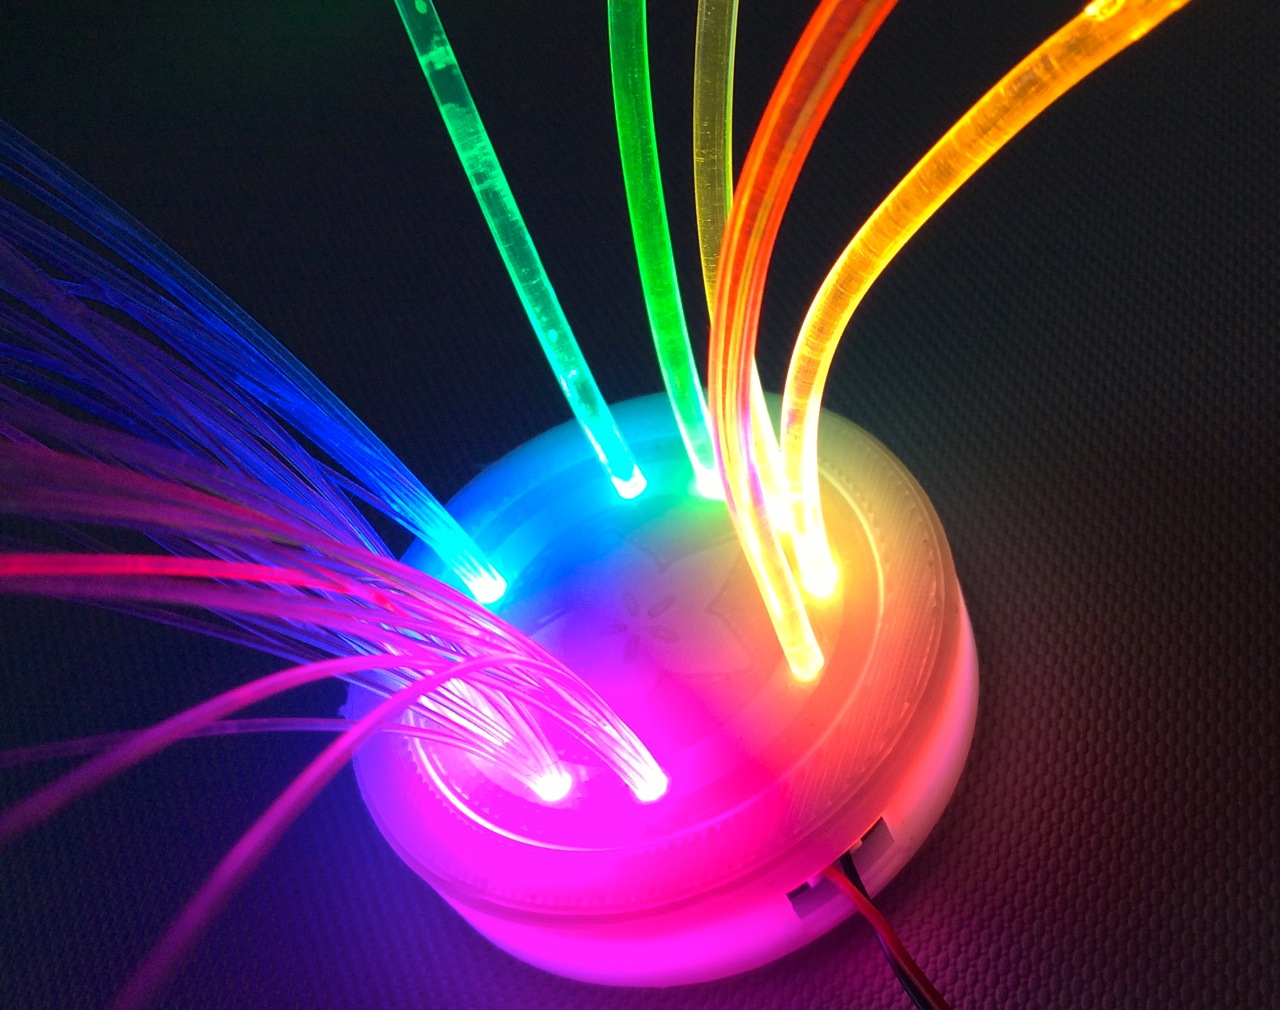 led_pixels_fiber_optic_circuit_playground.jpg